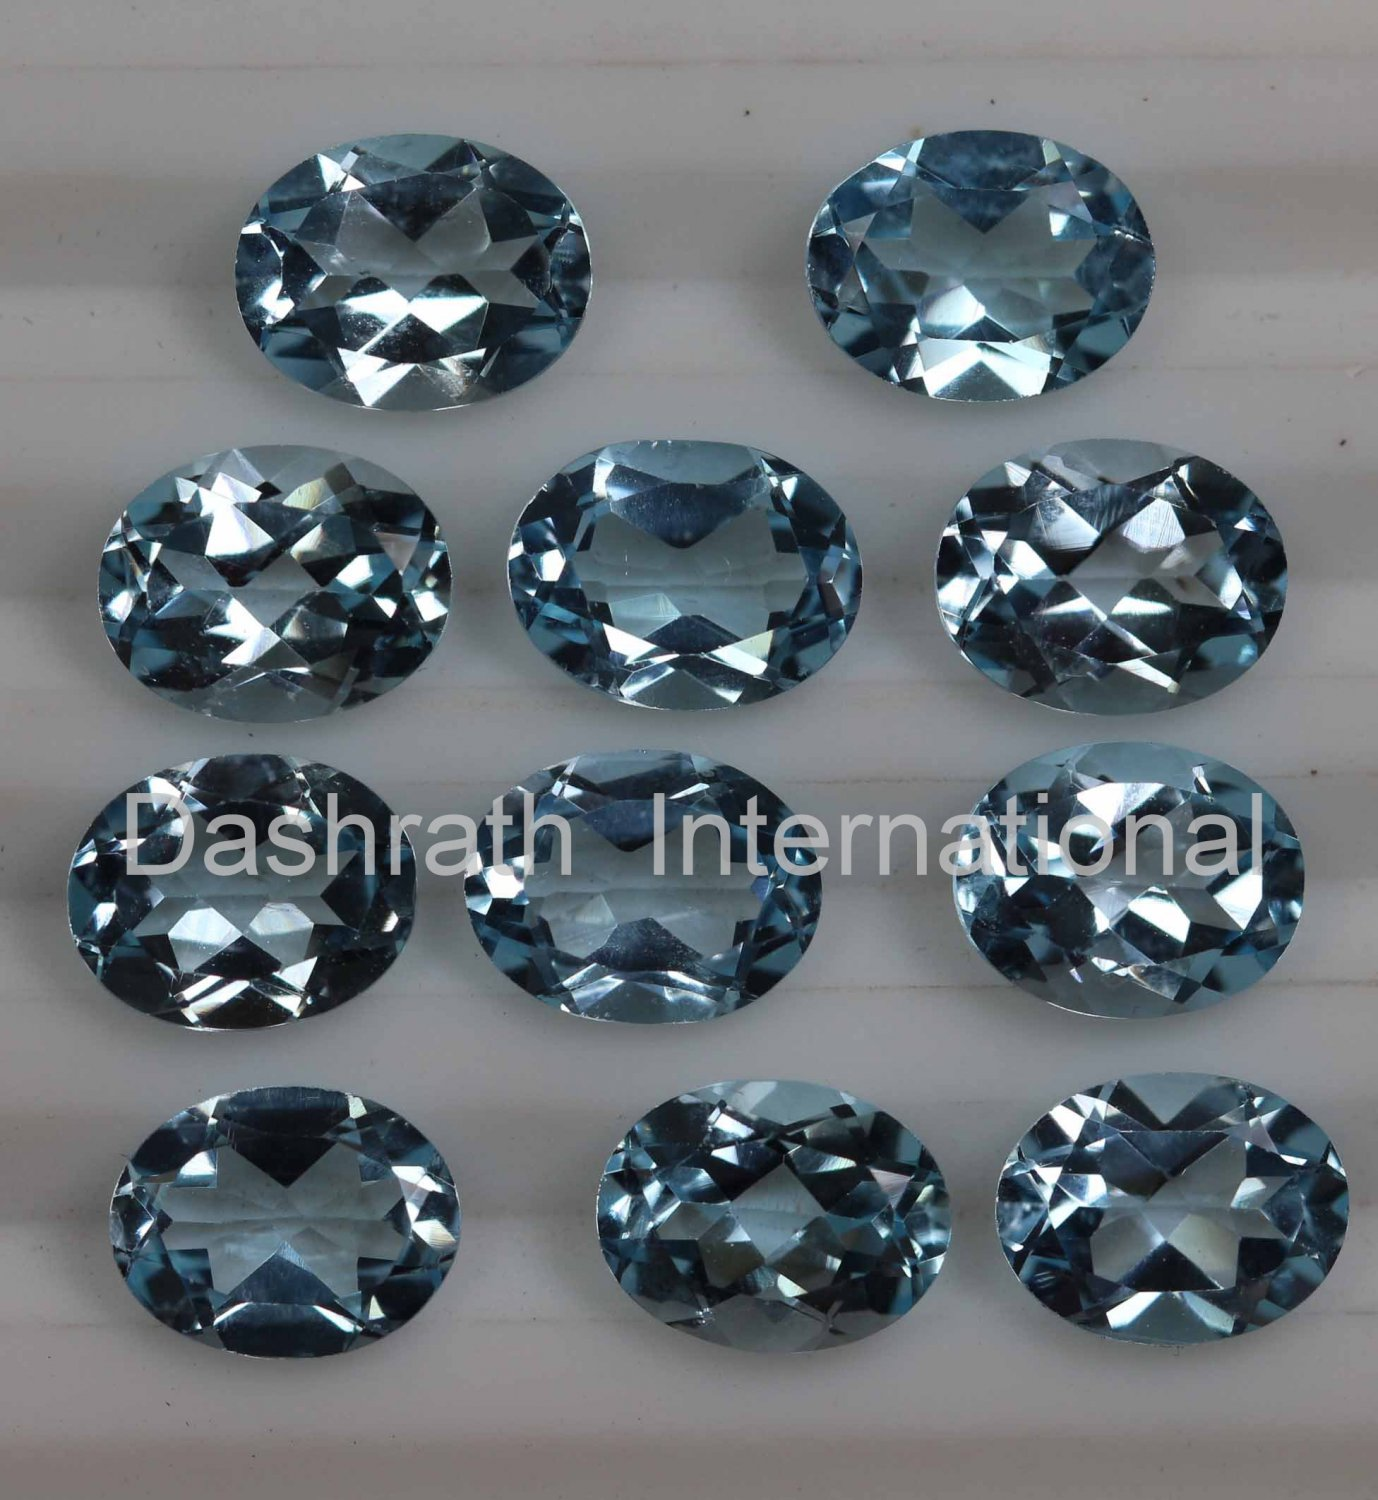 5x3mm Natural Sky Blue Topaz Faceted Cut Oval 50 Pieces Lot  Top Quality Loose Gemstone